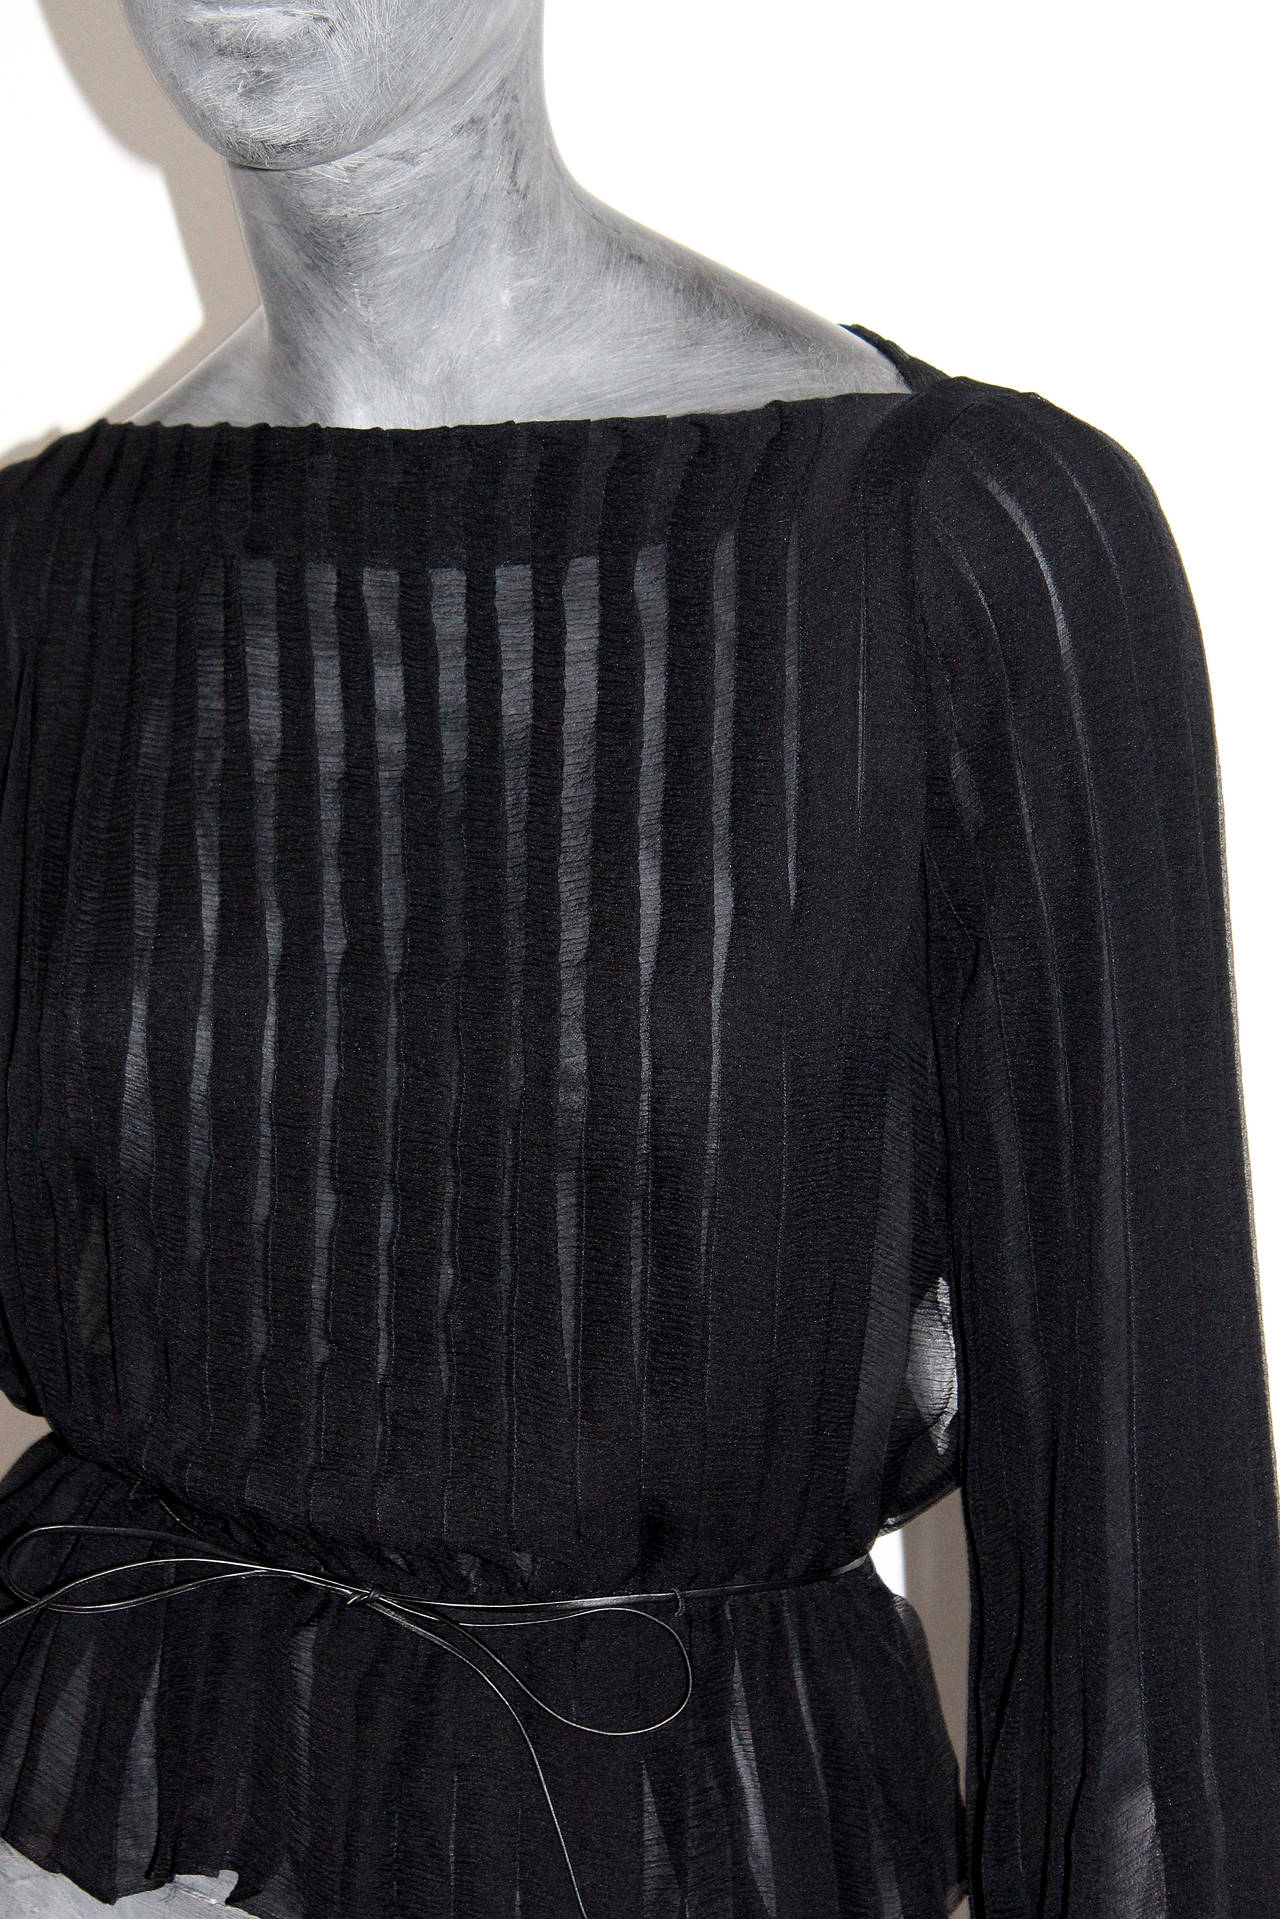 Tom Ford for Gucci Pleated Silk Chiffon Blouse 4